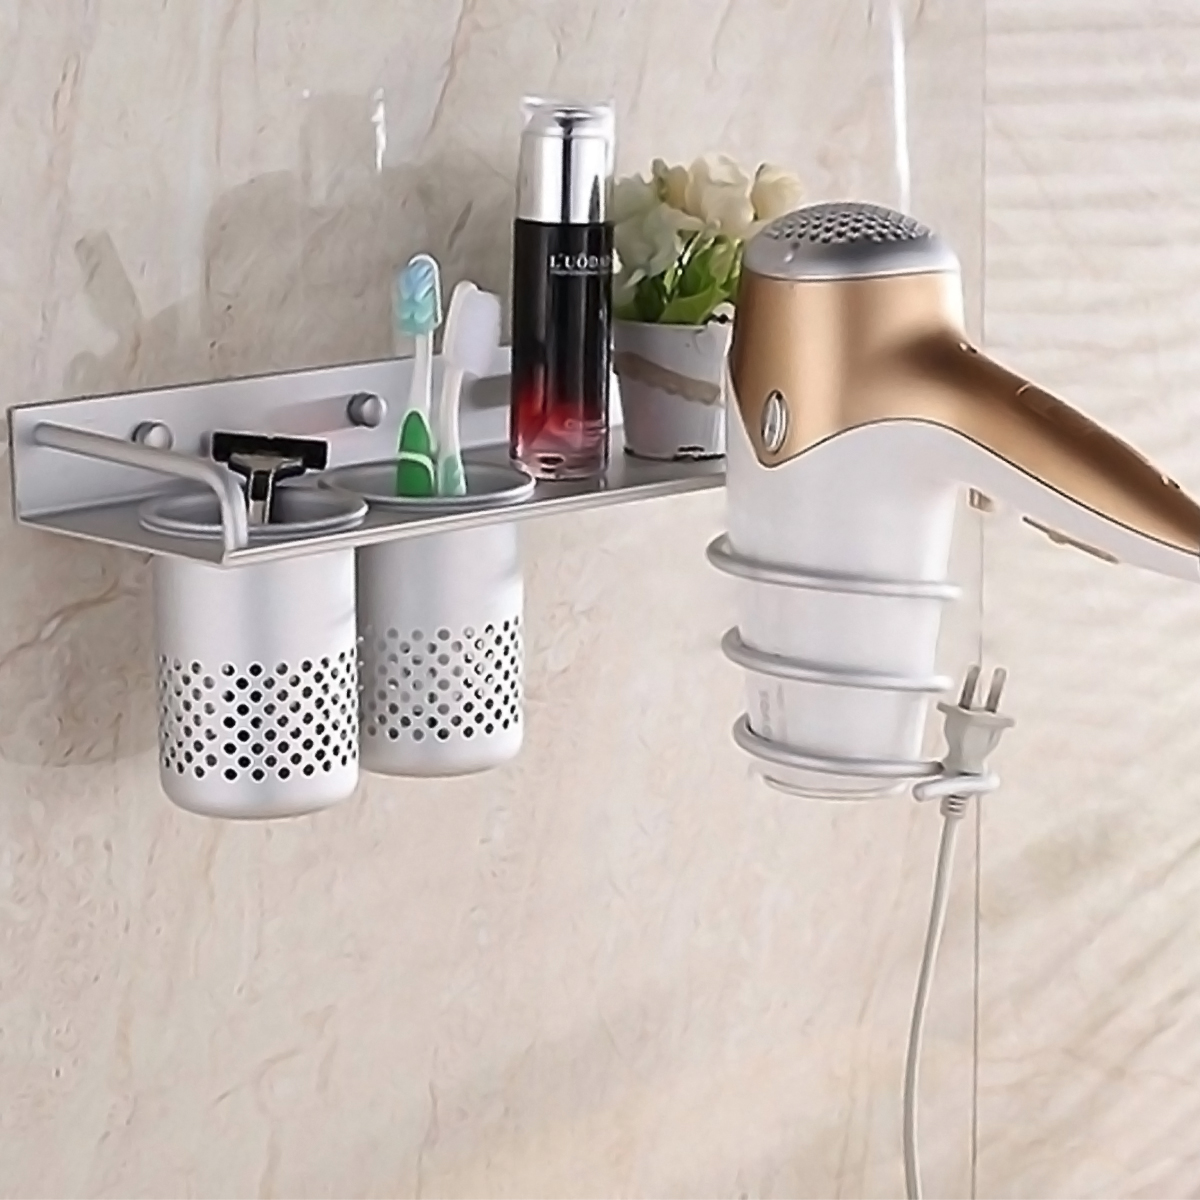 Multifunction Hair Dryer Stands Wall Mounted Aluminum Bathroom Organizer shelf with 2 cups by